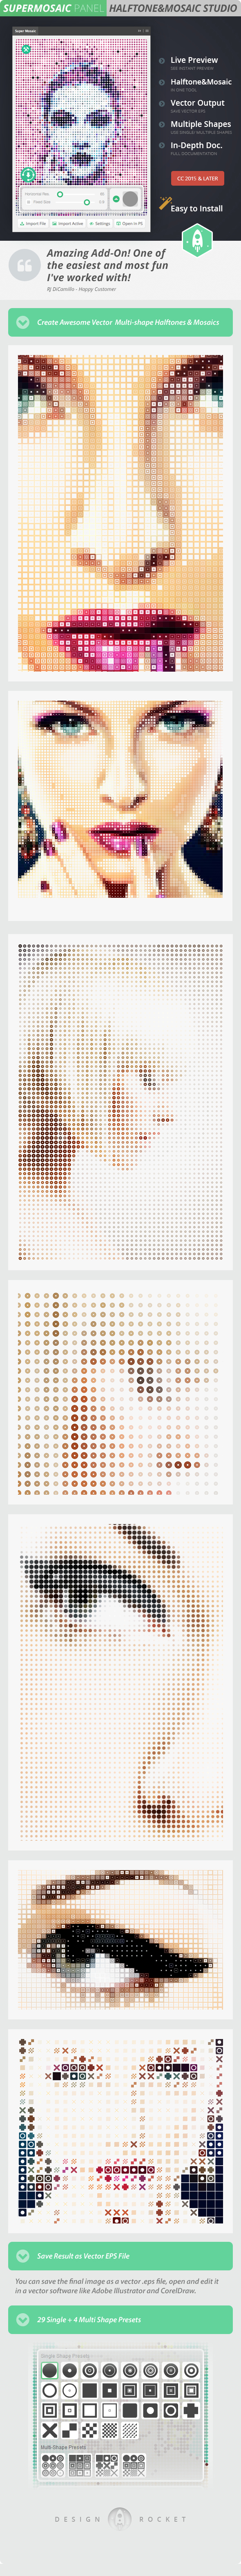 GraphicRiver SuperMosaic Awesome Multip-Shape Halftones and Mosaics 15373306